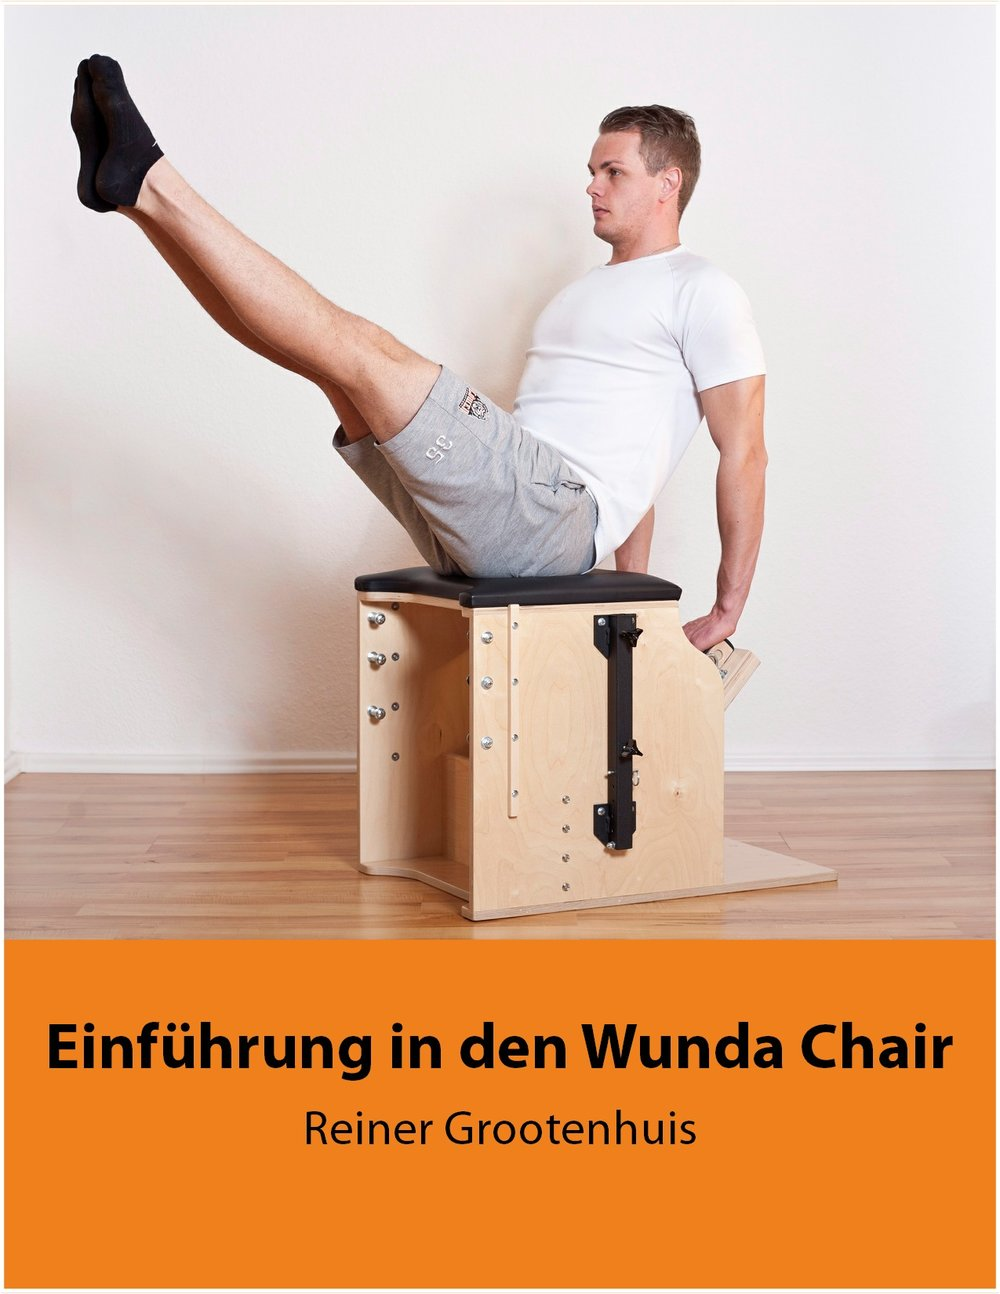 Cover Wunda Chair Manual.jpg